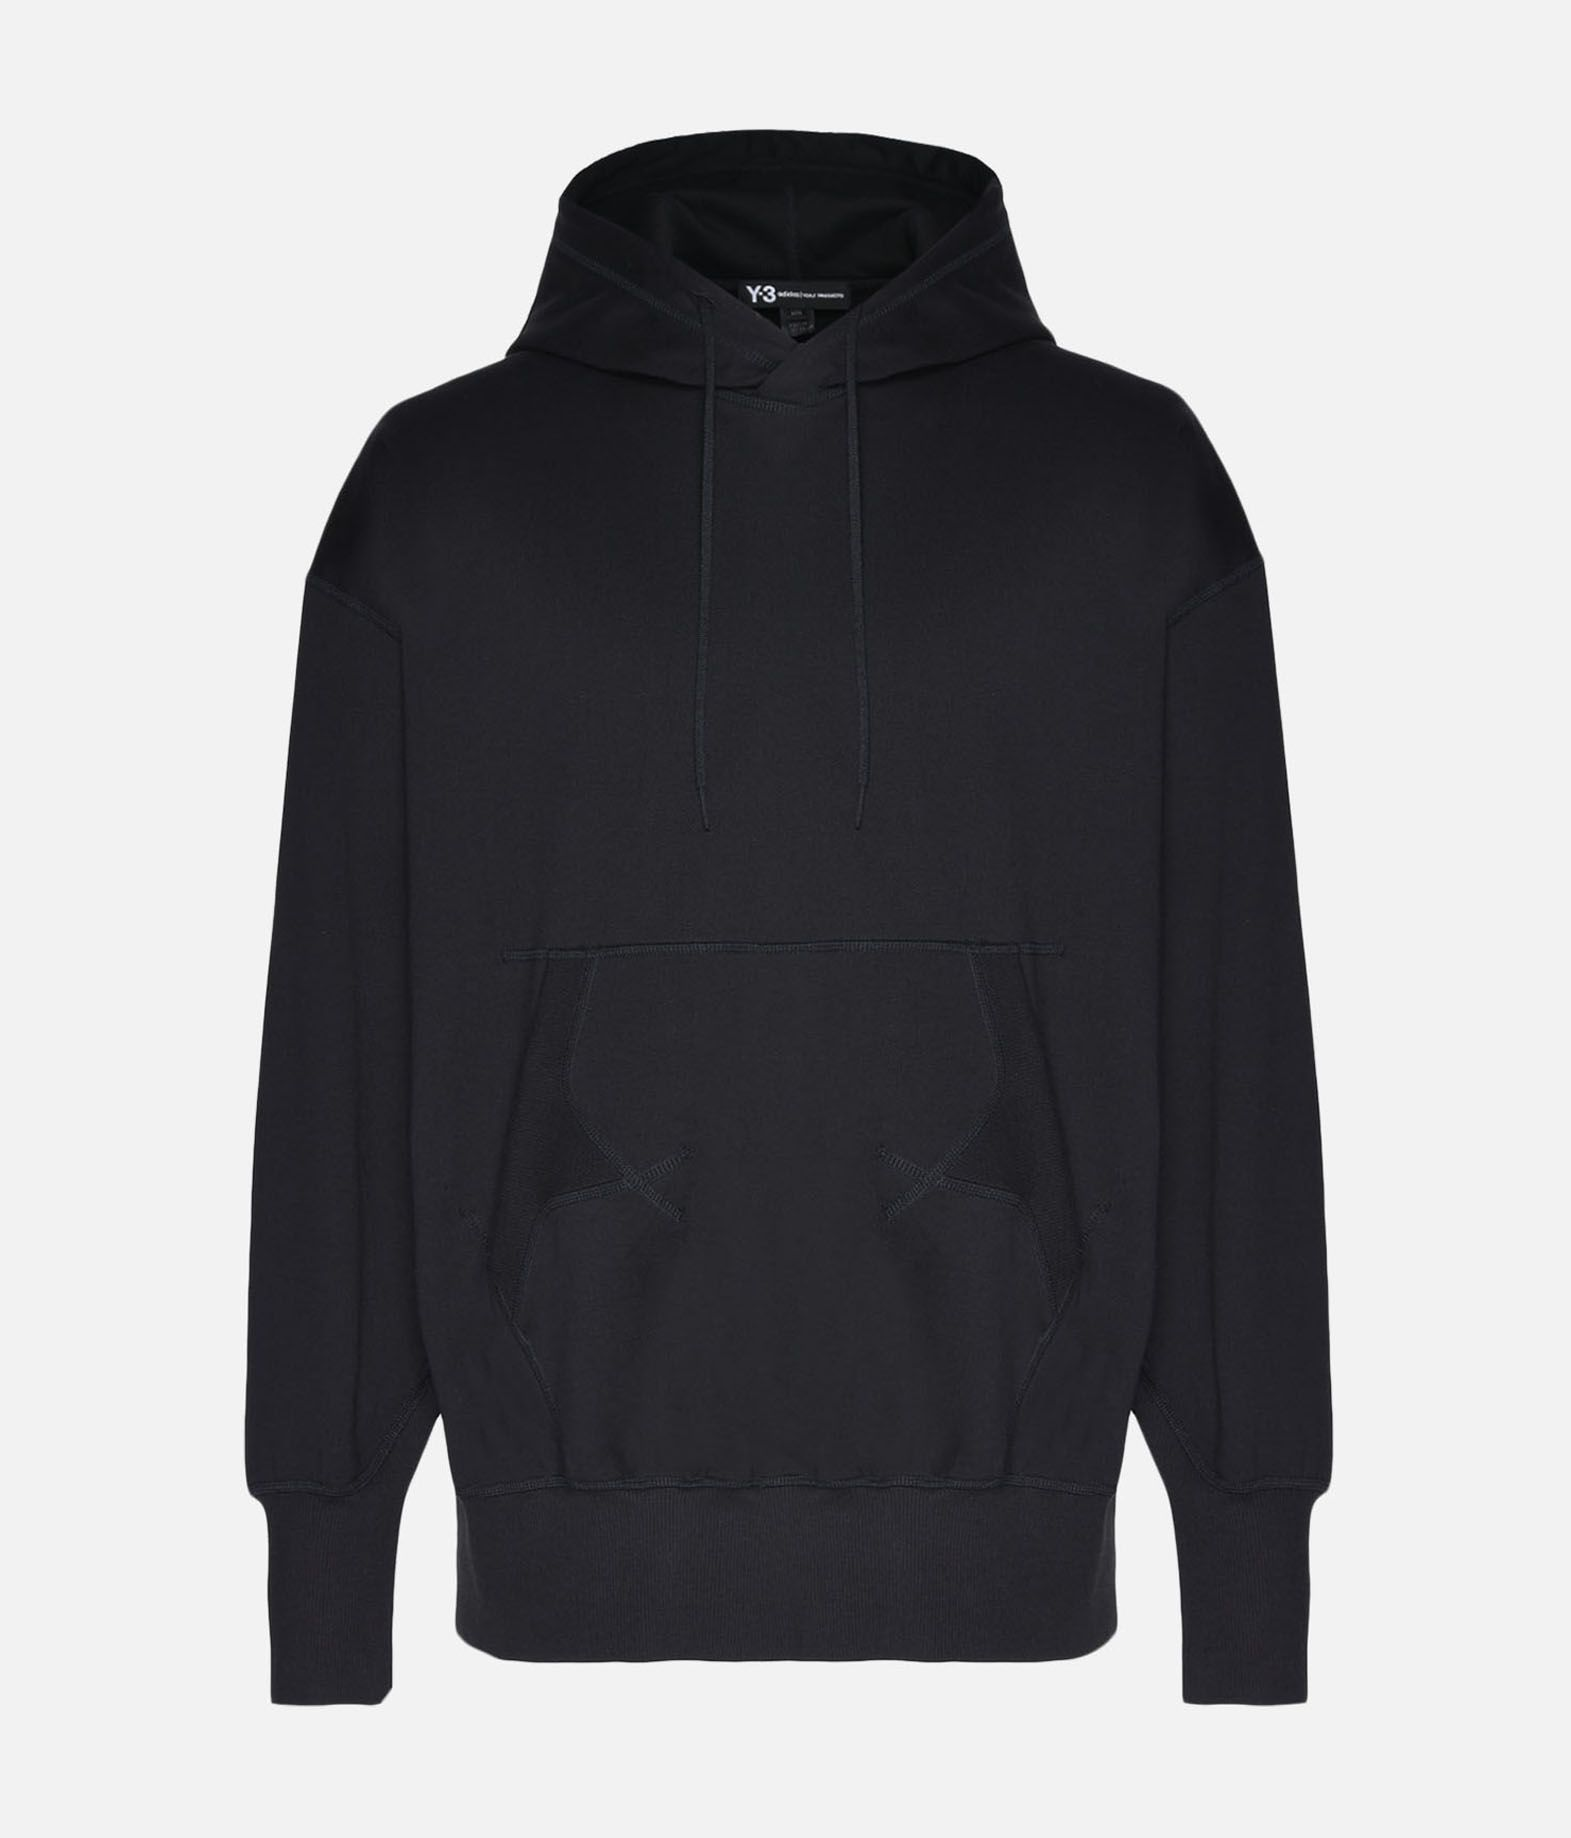 Y-3 Y-3 Stacked Logo Hoodie Hooded sweatshirt Man f